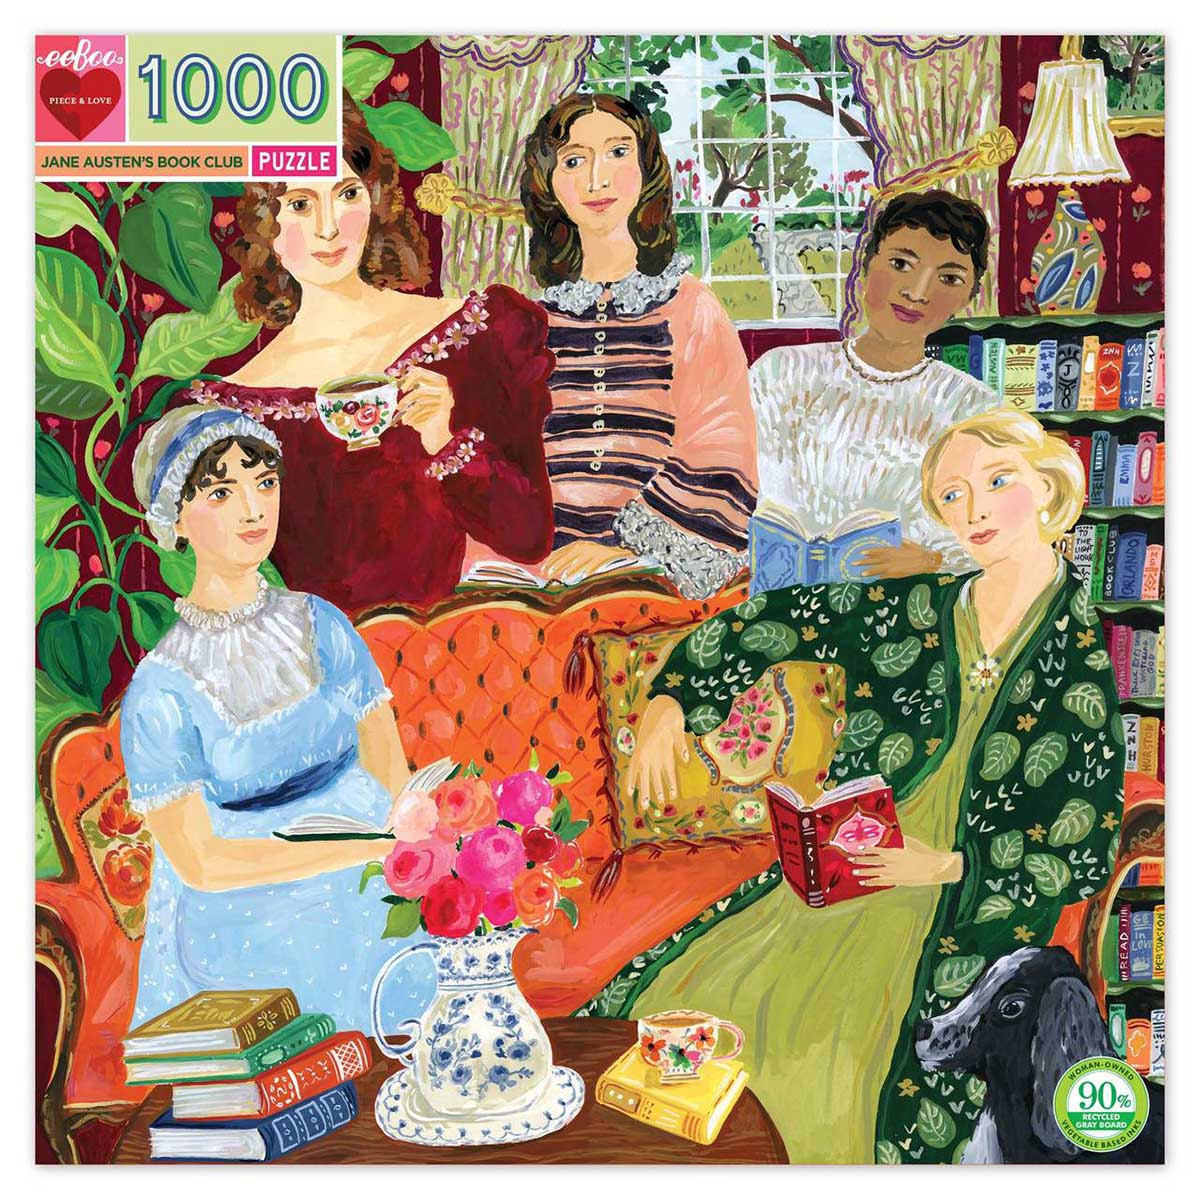 Jane Austen's Book Club People Jigsaw Puzzle